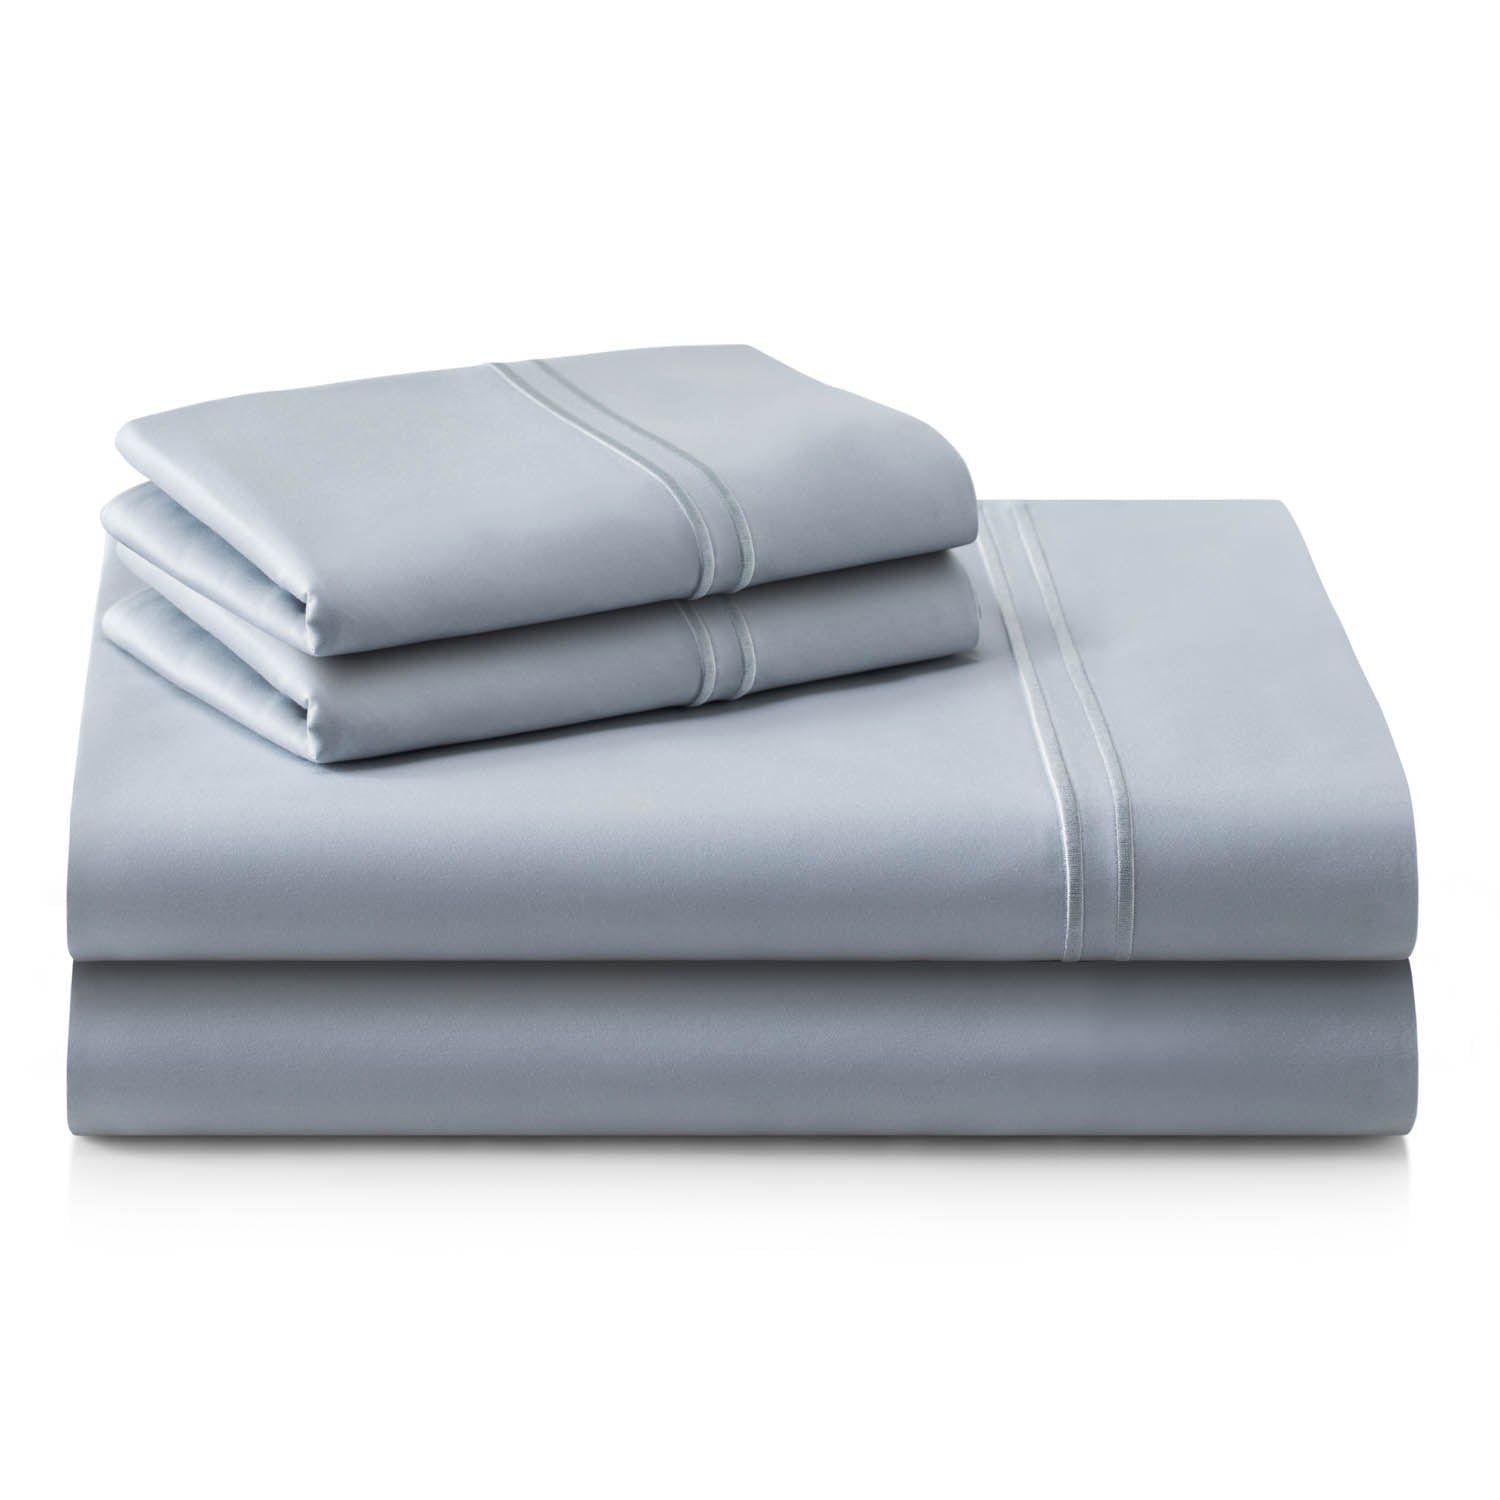 Supima Cotton Sheets Cal King Smoke - Yogasleep by Malouf